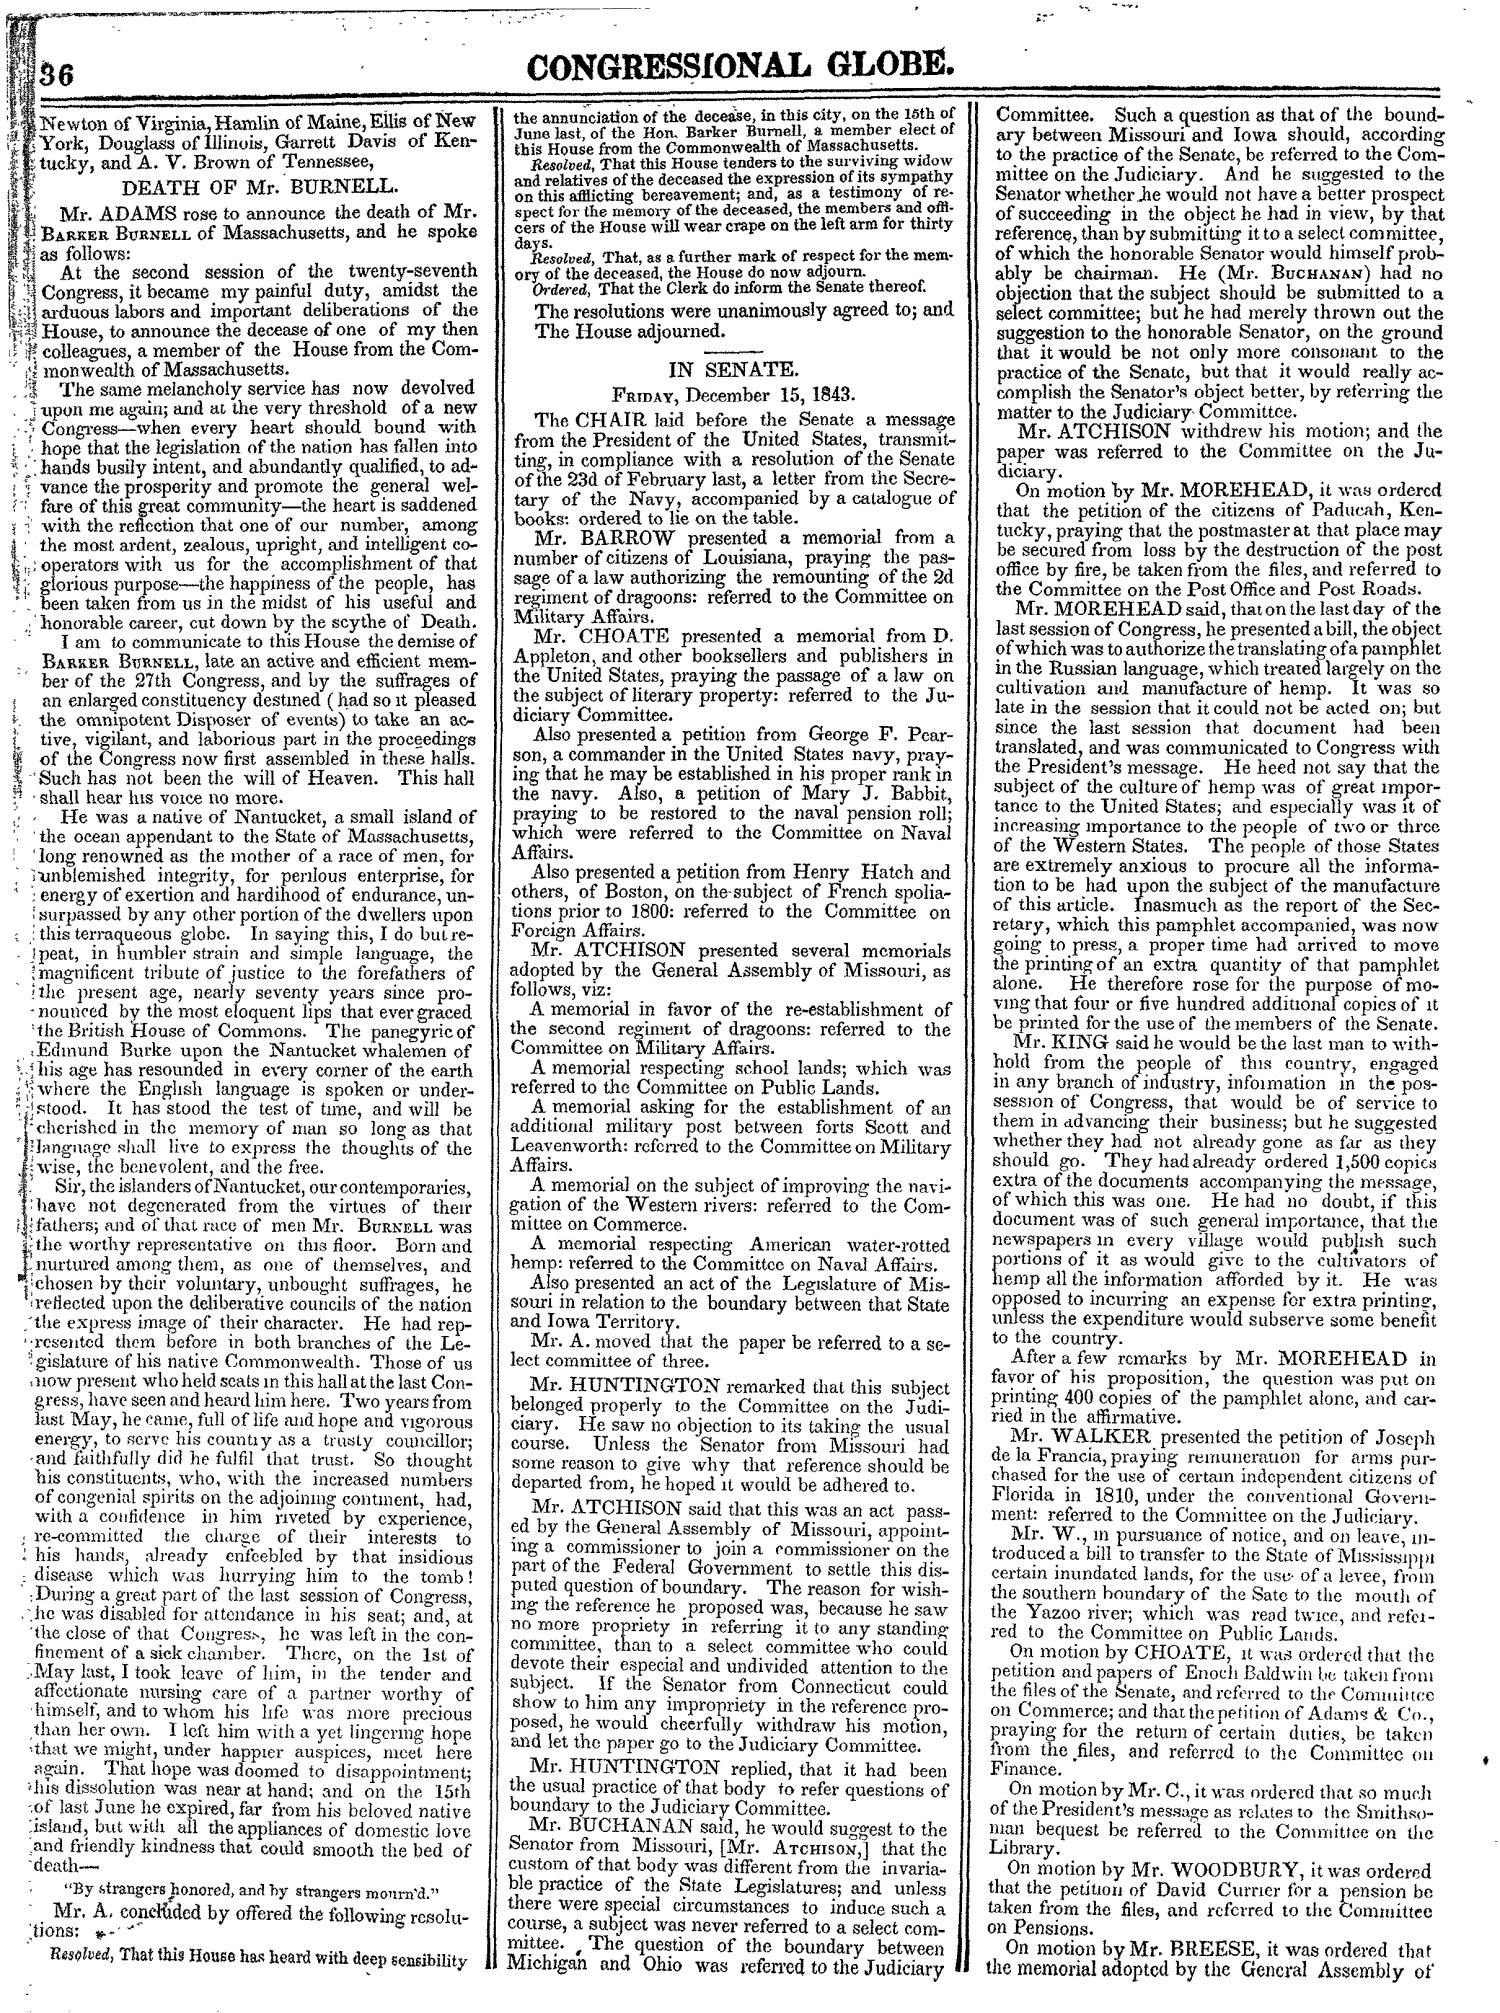 The Congressional Globe, Volume 13, Part 1: Twenty-Eighth Congress, First Session                                                                                                      36